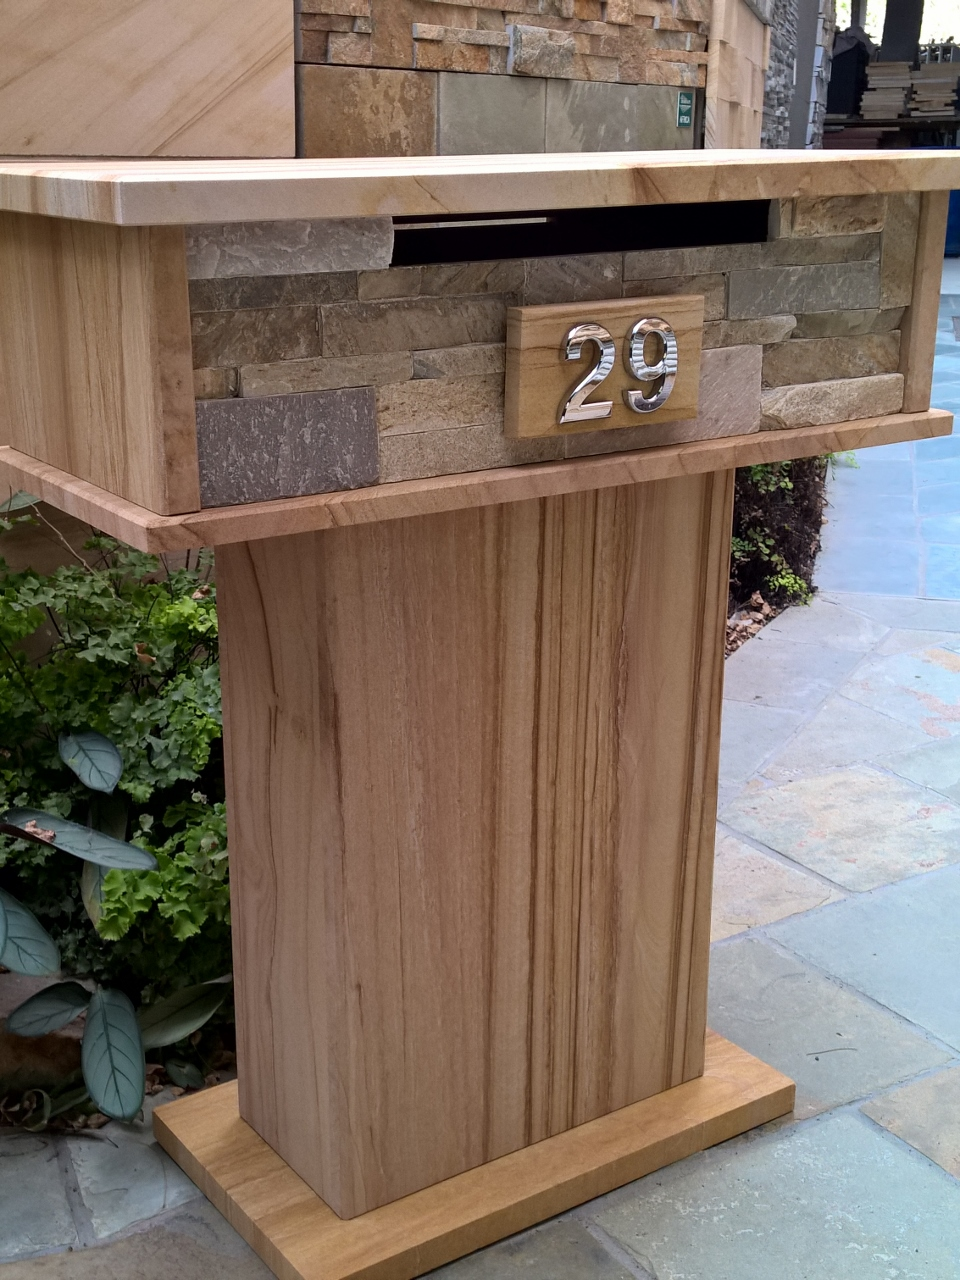 55. Extra wide sandstone letterbox with stackerstone front opening is wide enough to fit A4 magazines. Fitted with aluminium lock 2 key. Size 760x340 Hight 870mm $790